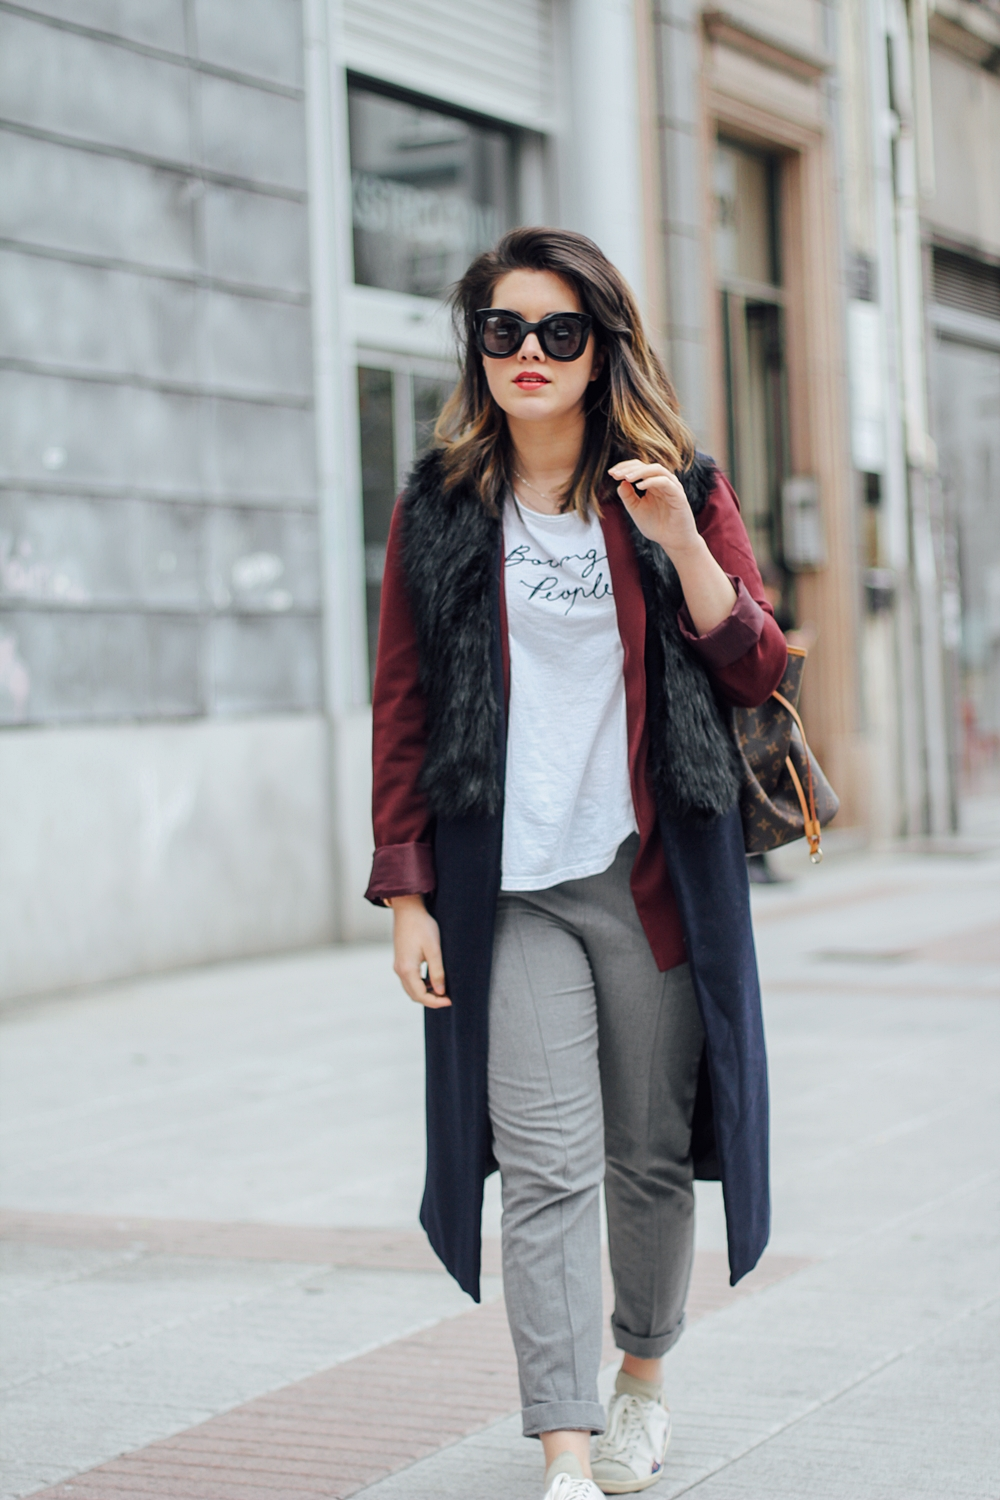 isabel marant sneakers with faux fur vest and red blazer streetstyle myblueberrynightsblog